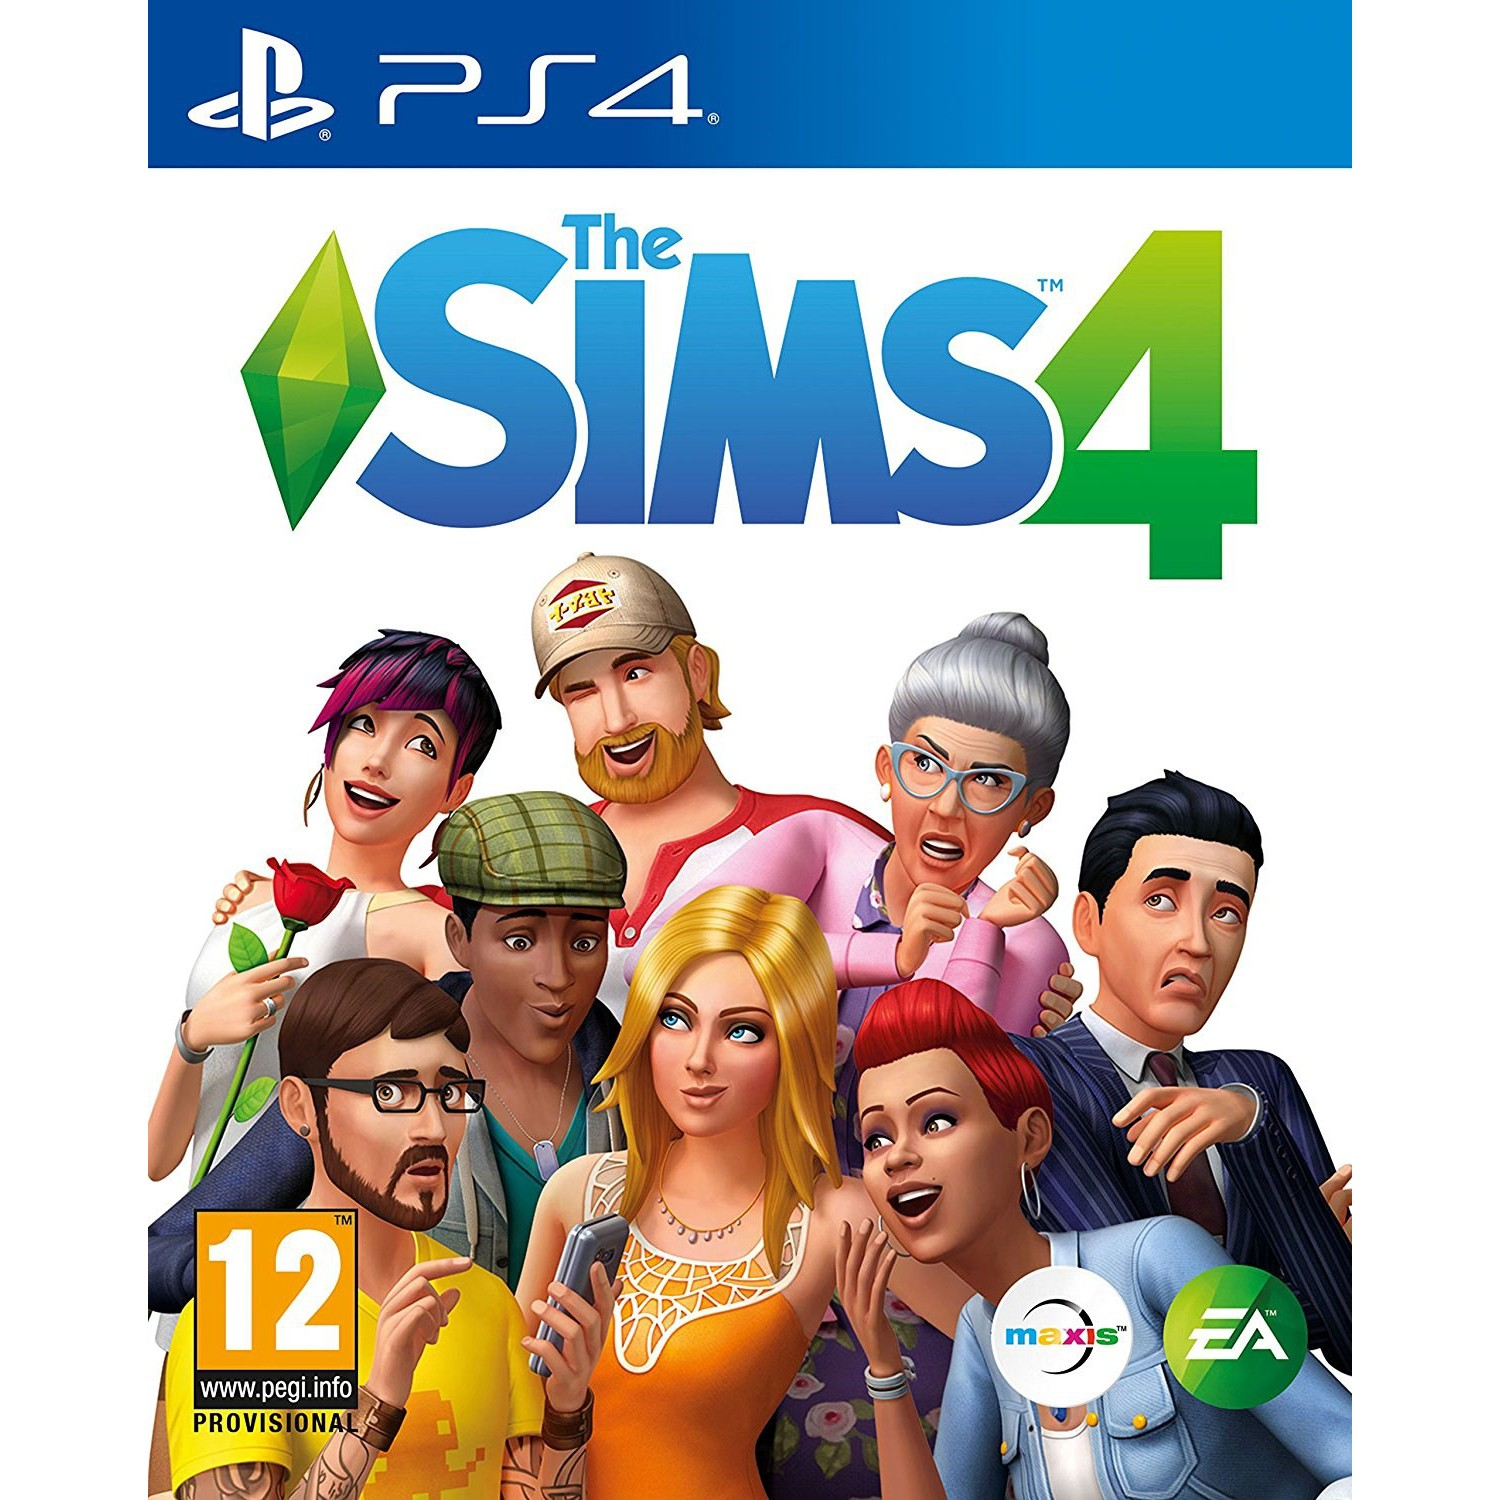 1061296 : The Sims 4 (PS4)